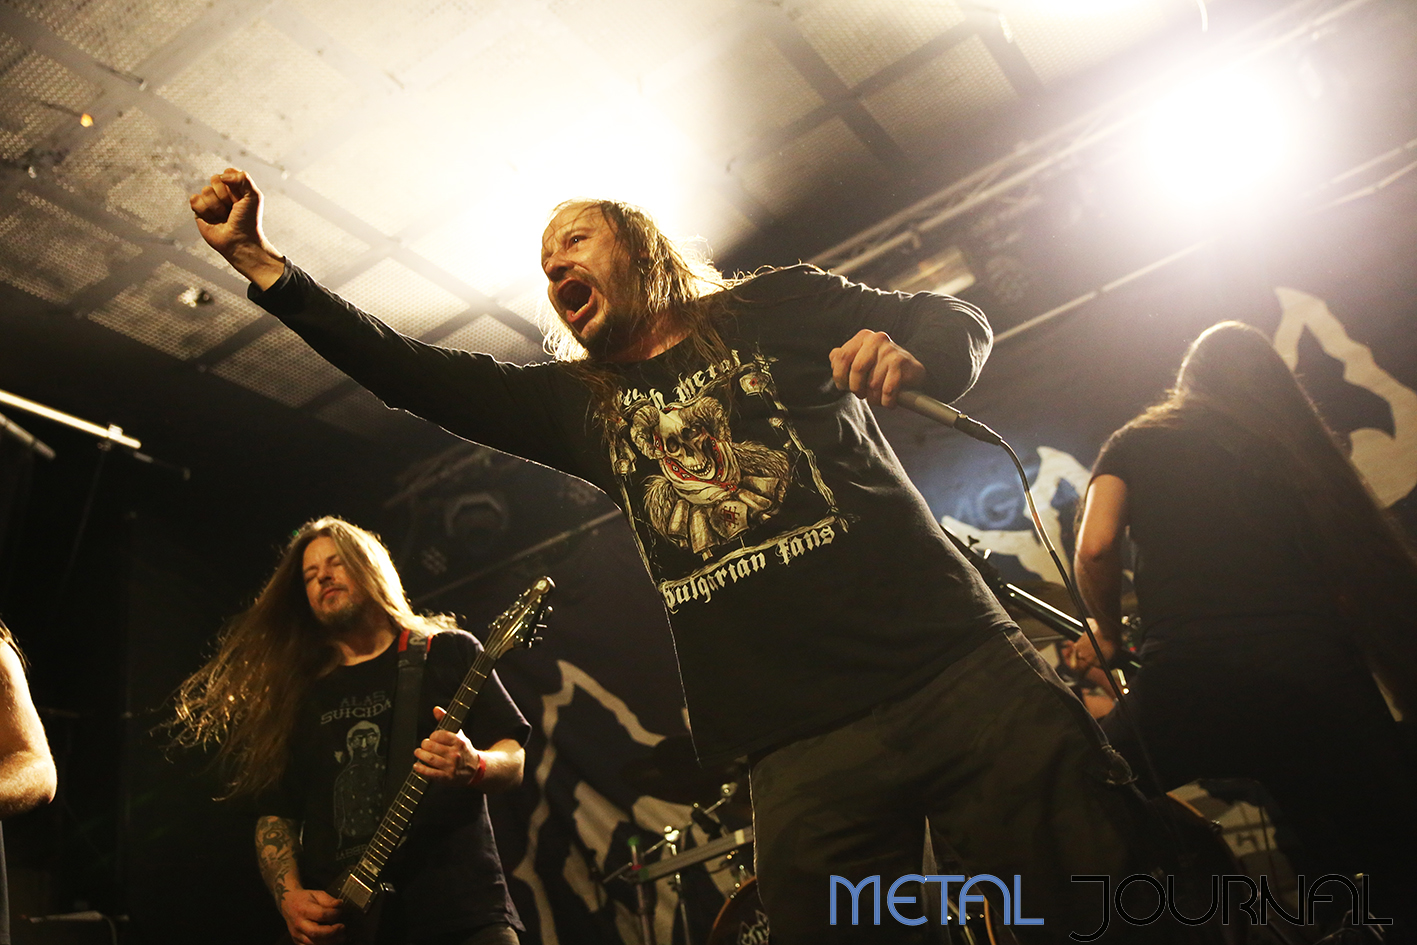 entombed ad - metal journal 2019 pic 1